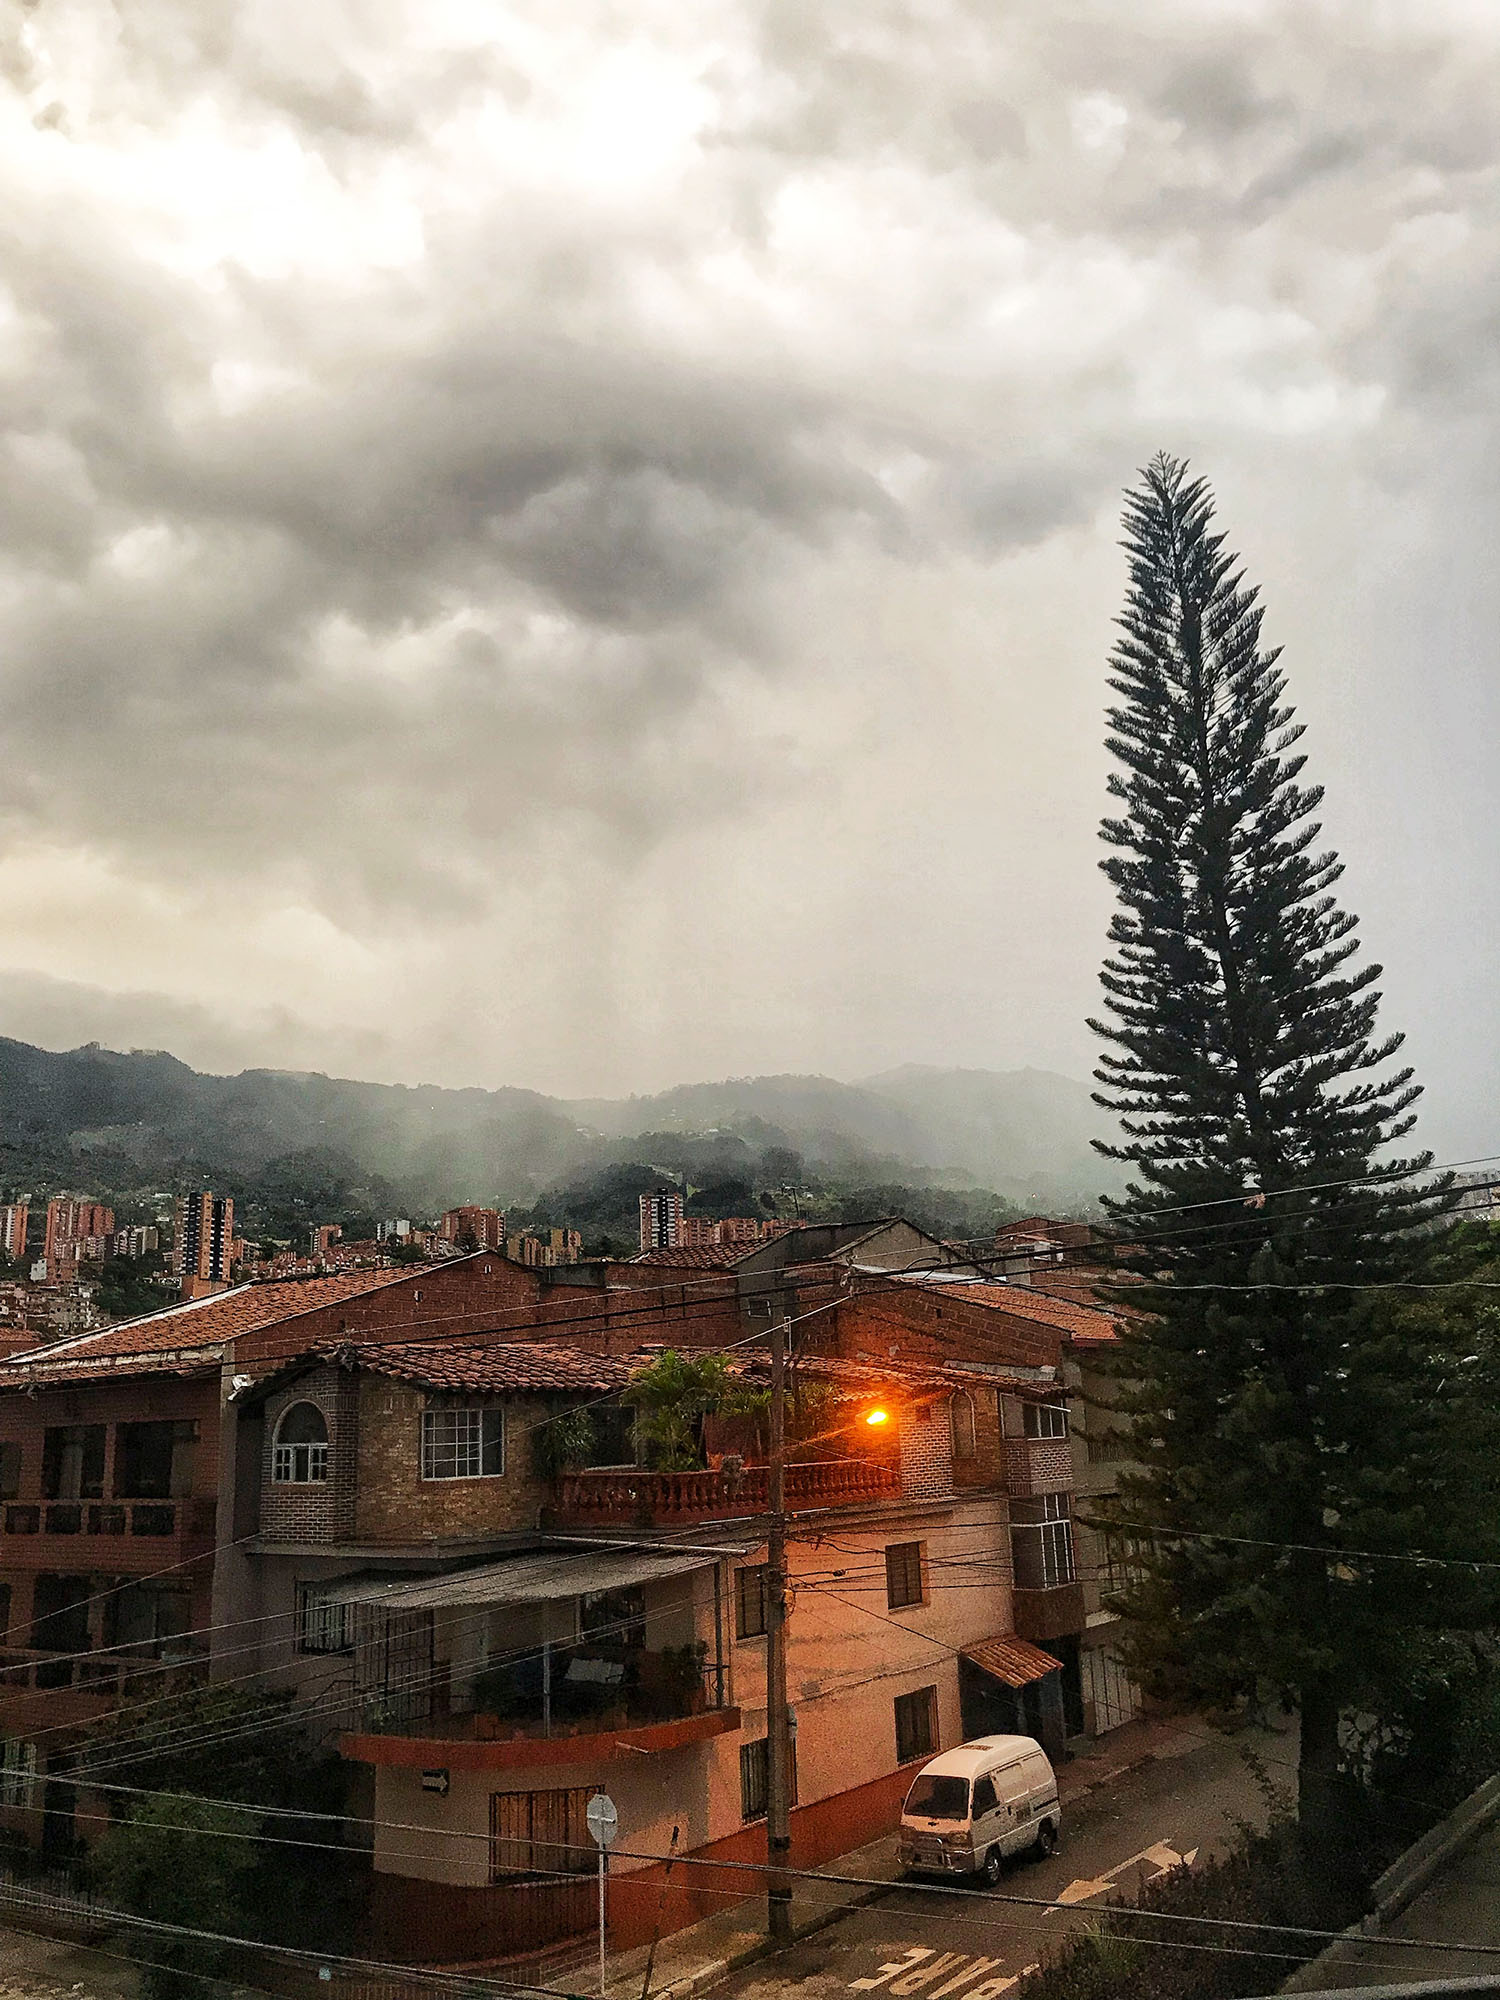 Storm clouds over rooftops with a giant pine tree in the middle